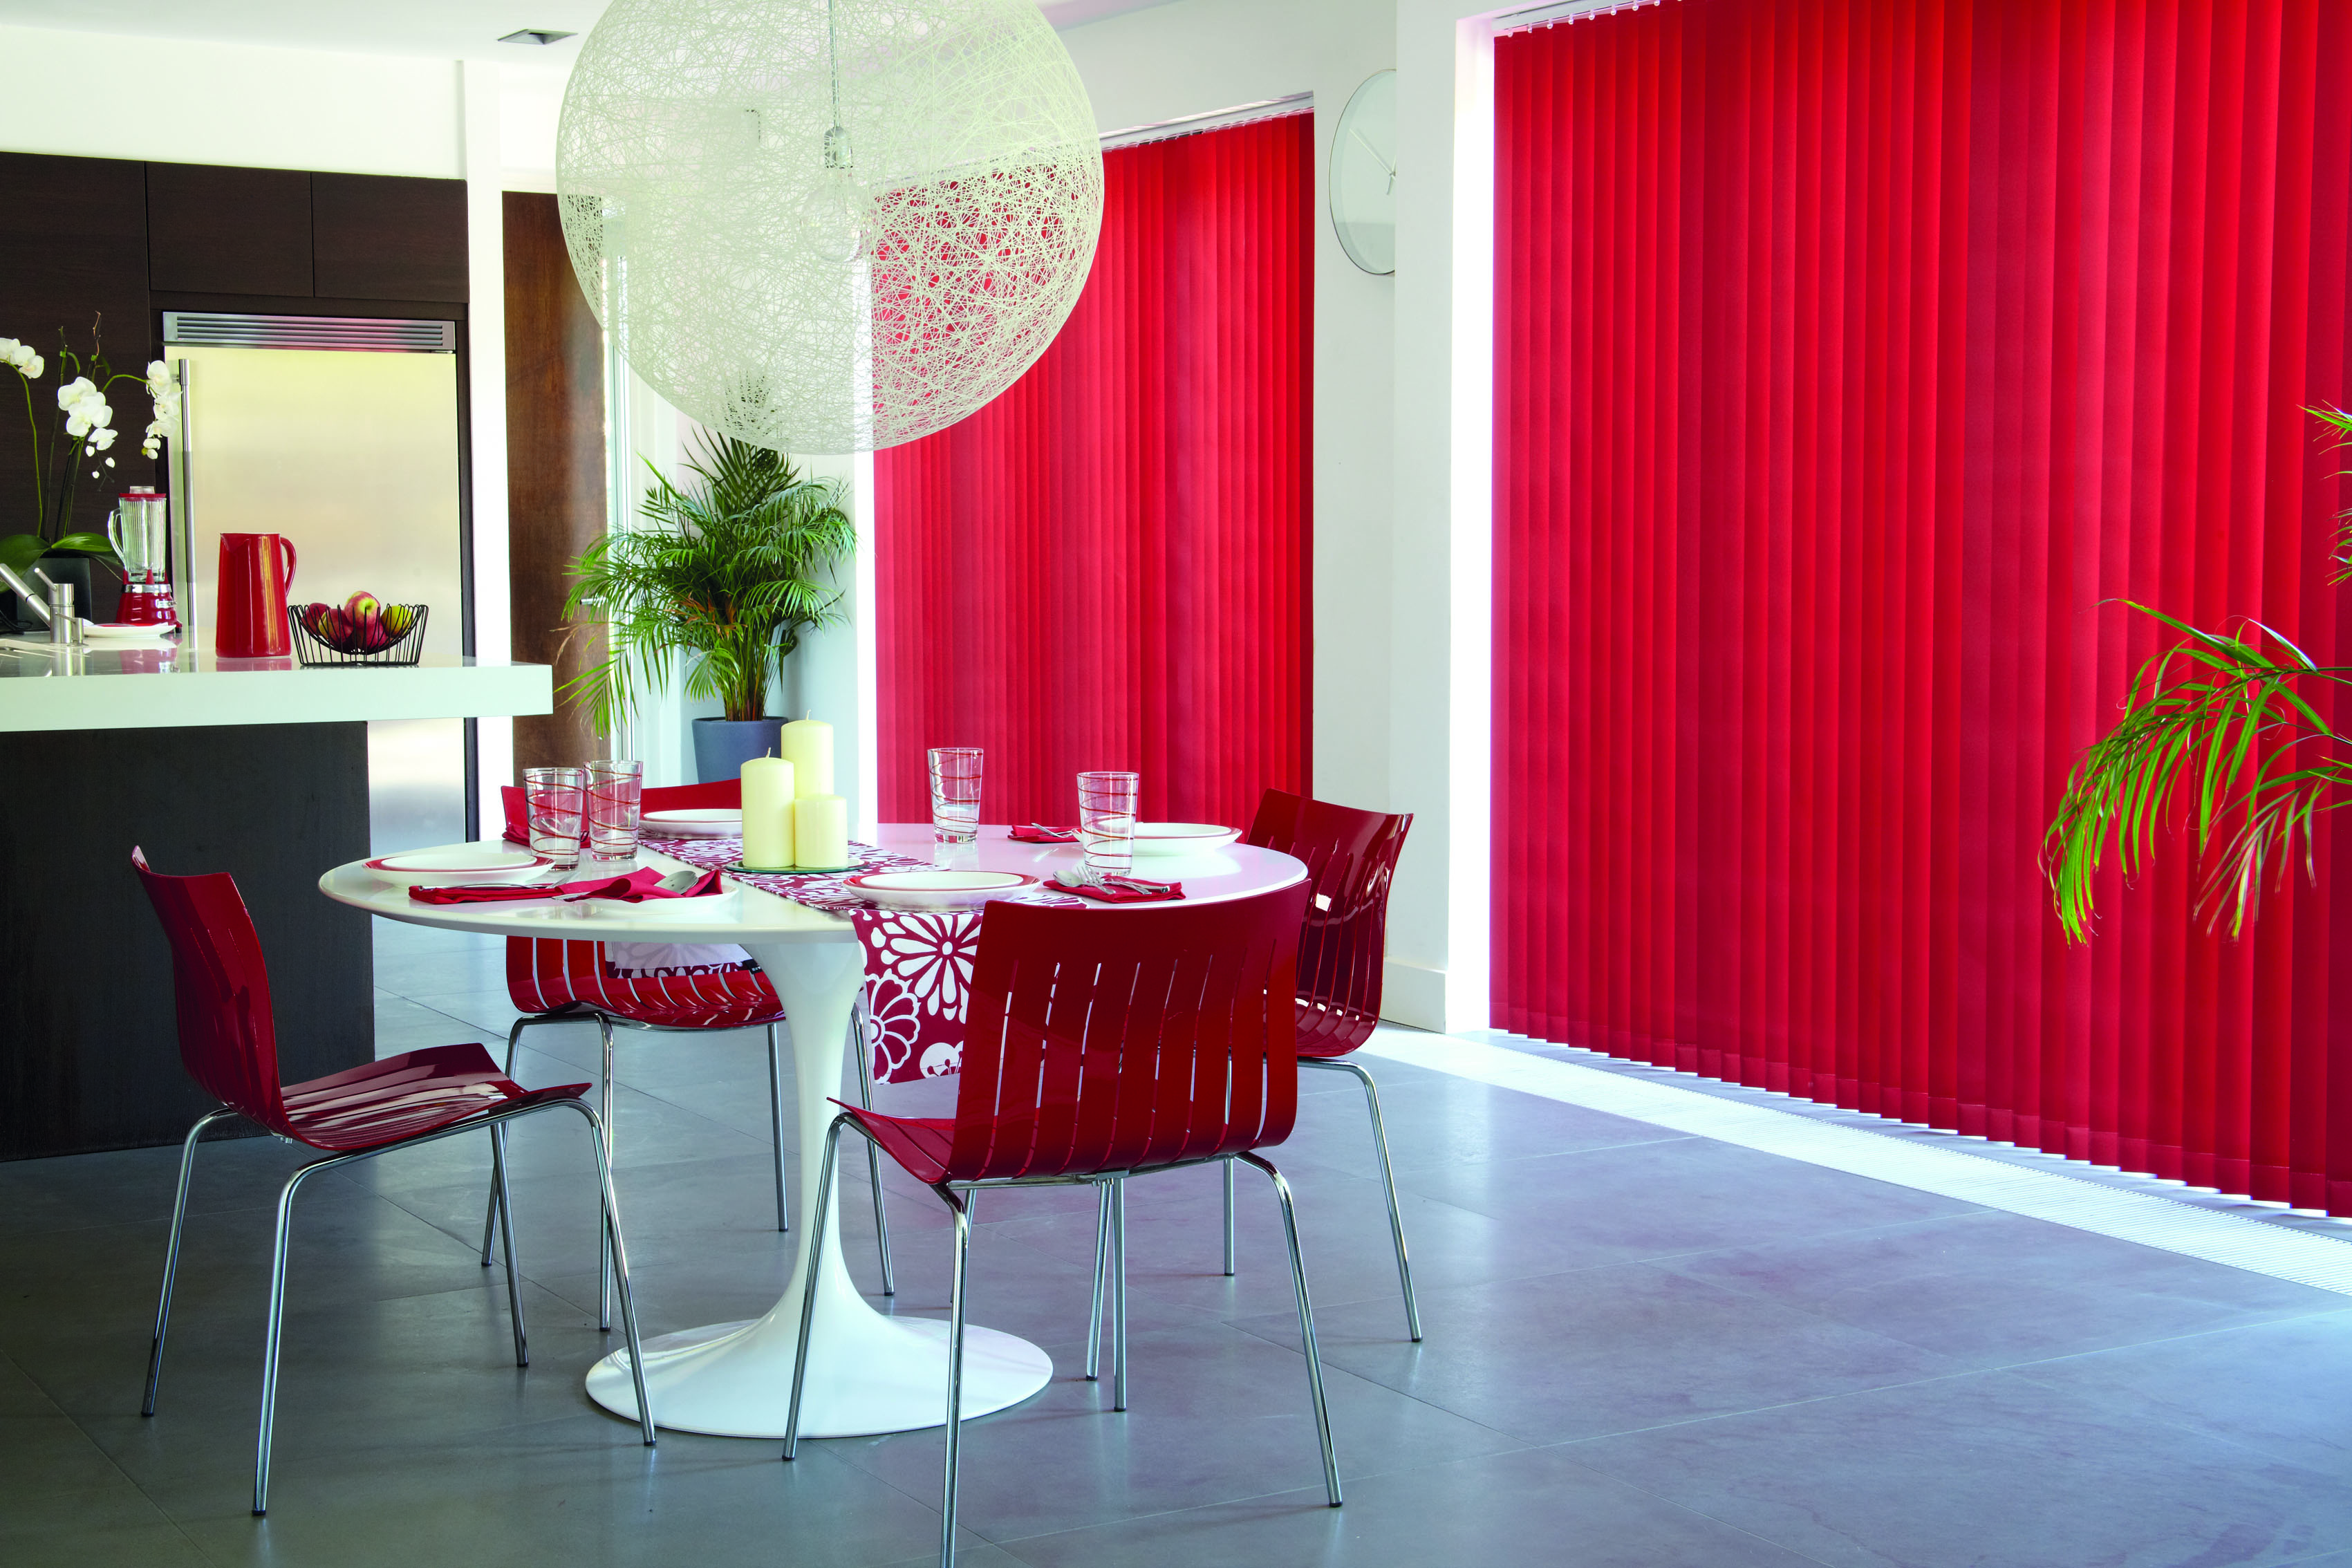 Blinds for dining room